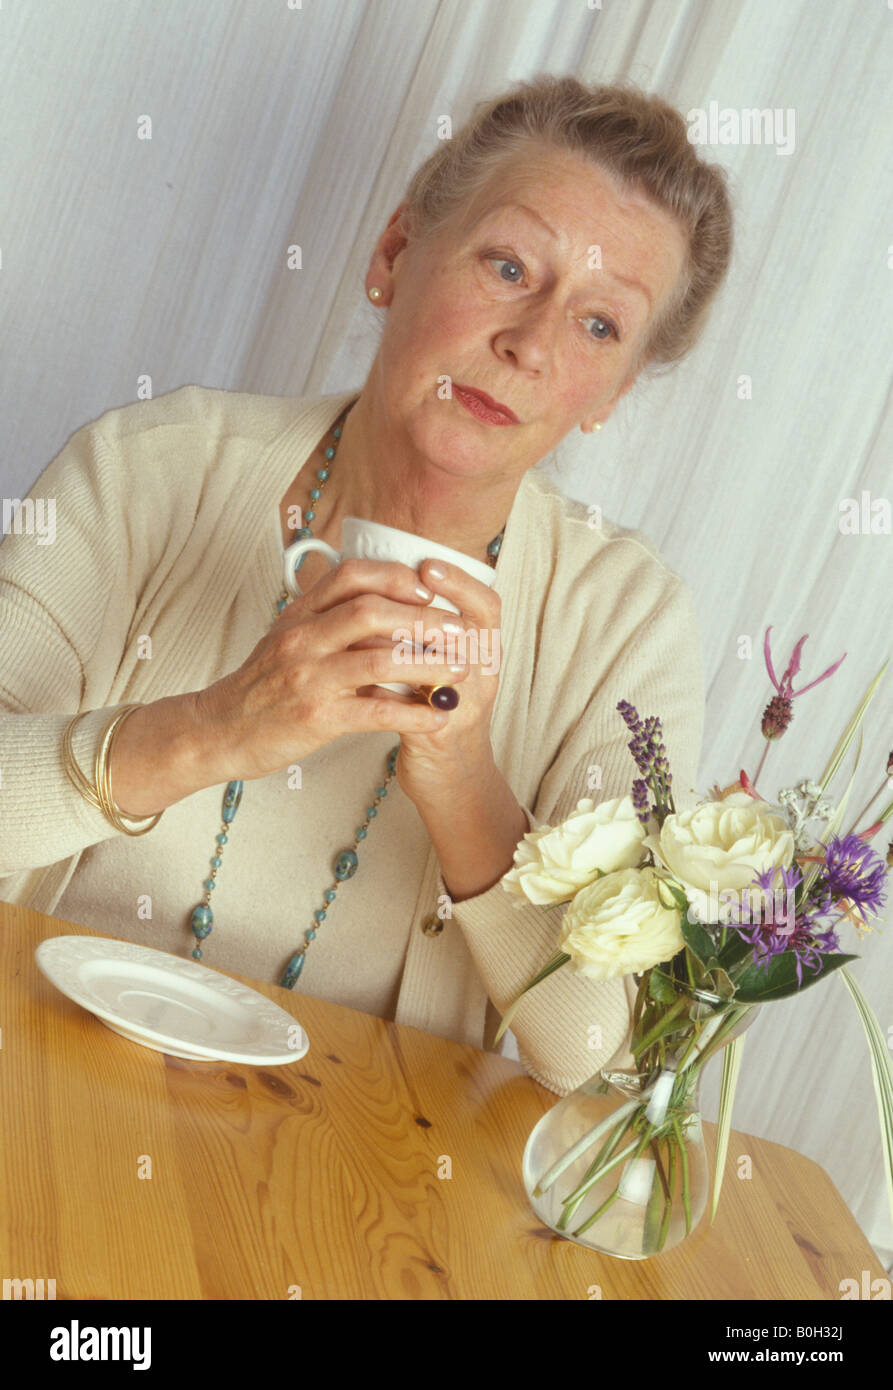 elderly woman drinking tea and looking sad - Stock Image